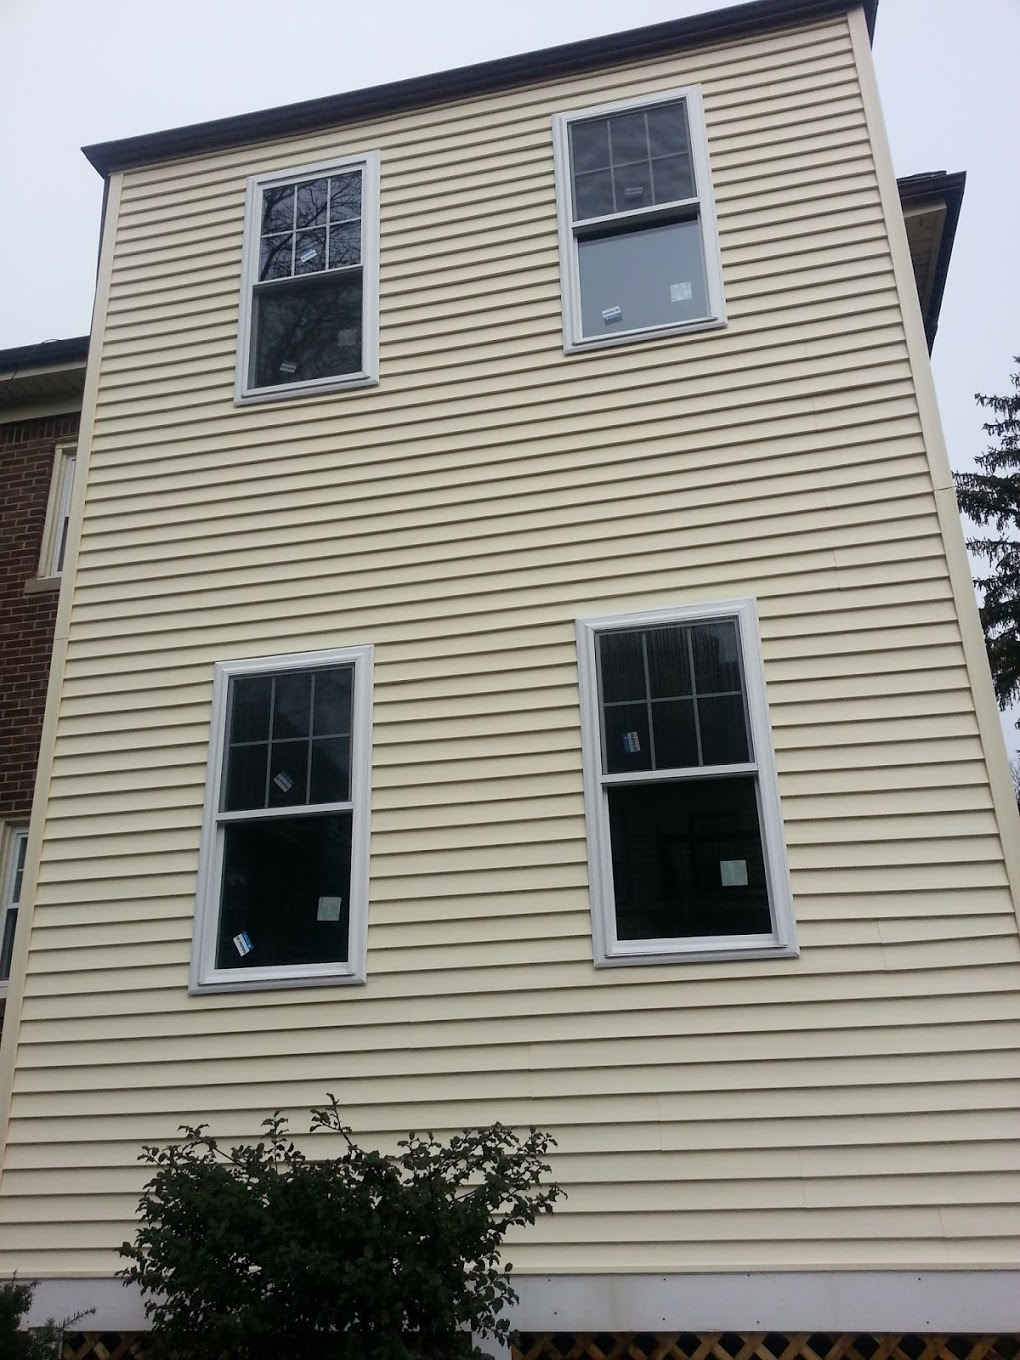 Rebuild and enclosure of porch with siding.